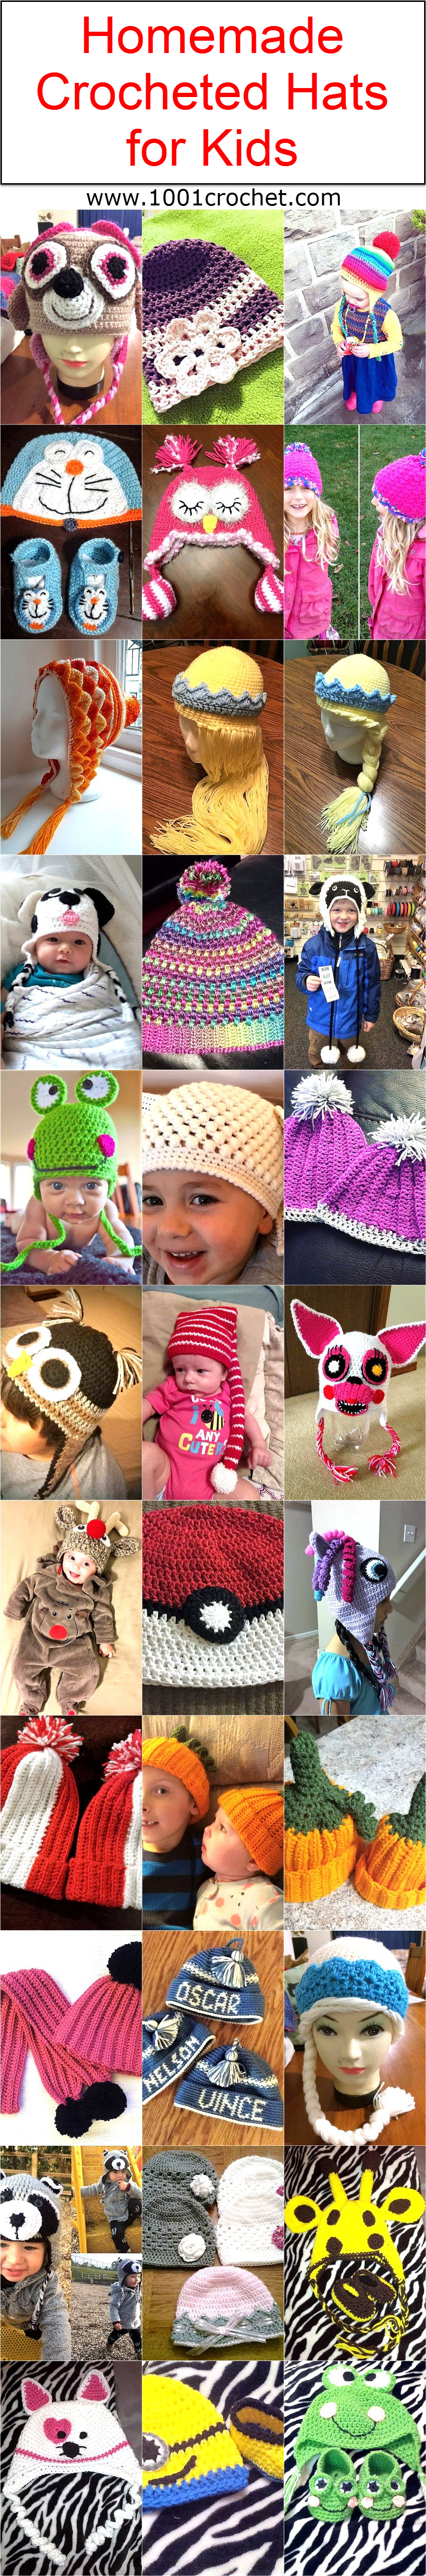 homemade-crocheted-hats-for-kids